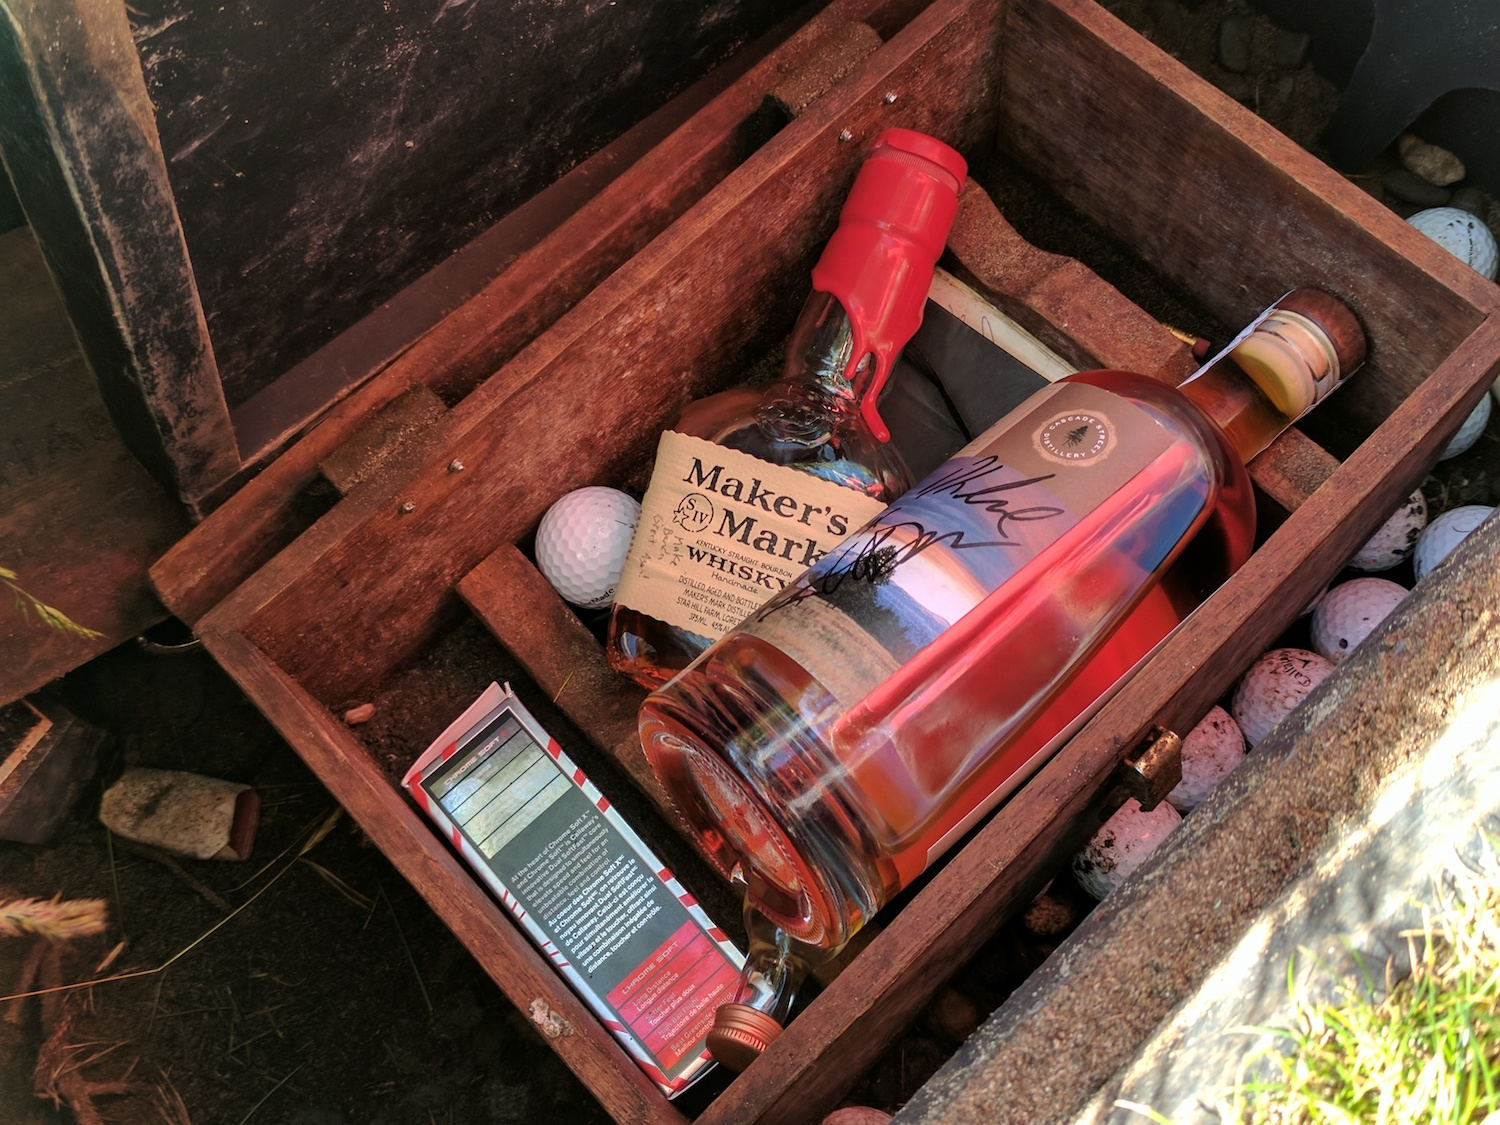 Here's a hidden item at Bandon Dunes that many golfers want to find: a box with a couple bottles of whiskey at a certain location on the original course. If you happen upon it, feel free to have a nip. After doing so, it's customary to write your name in the well-worn notebook in the box. We won't tell you where it's located, but your caddie might.